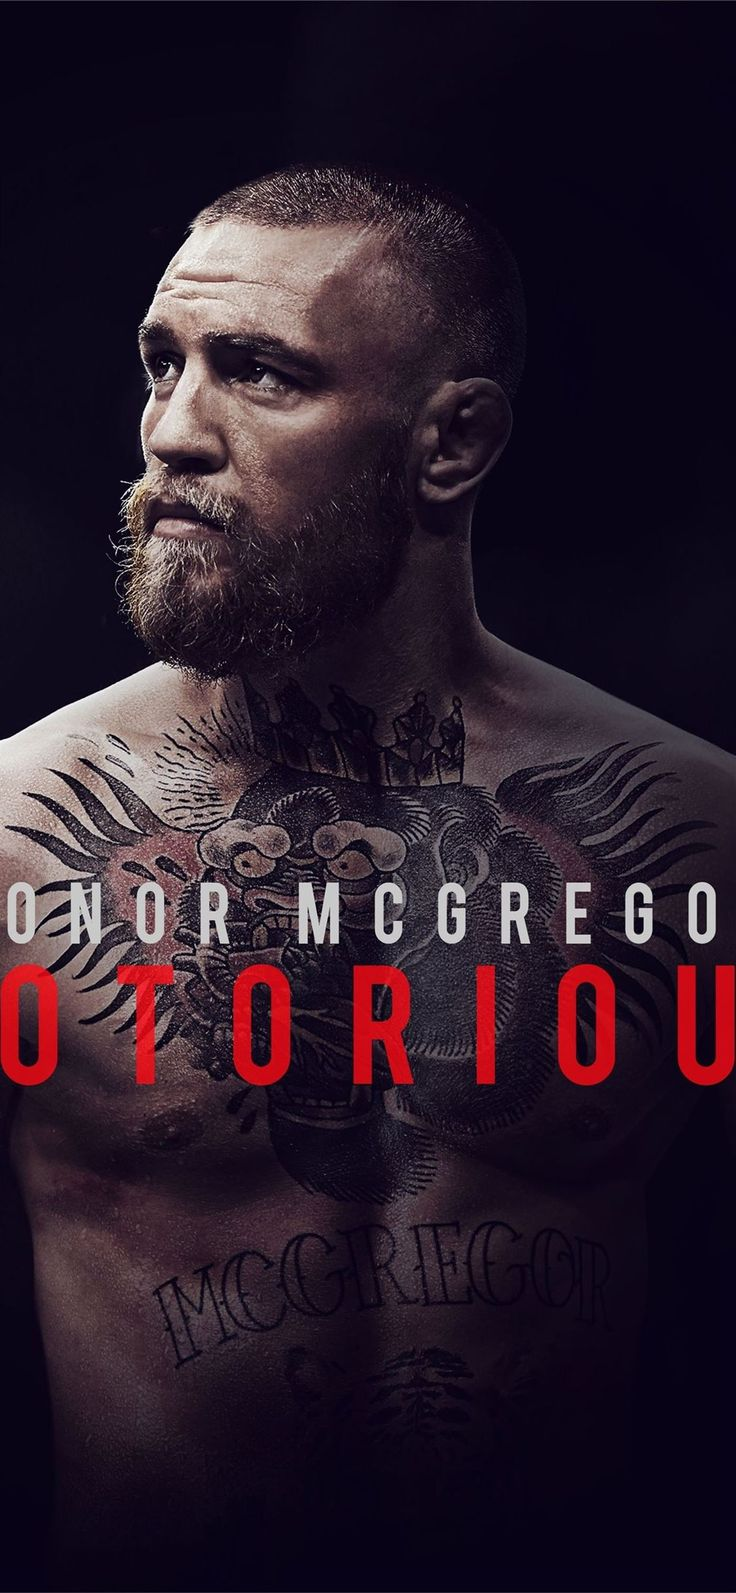 Pin by 凱哥 Mr on My Saves in 2020 Mcgregor wallpapers